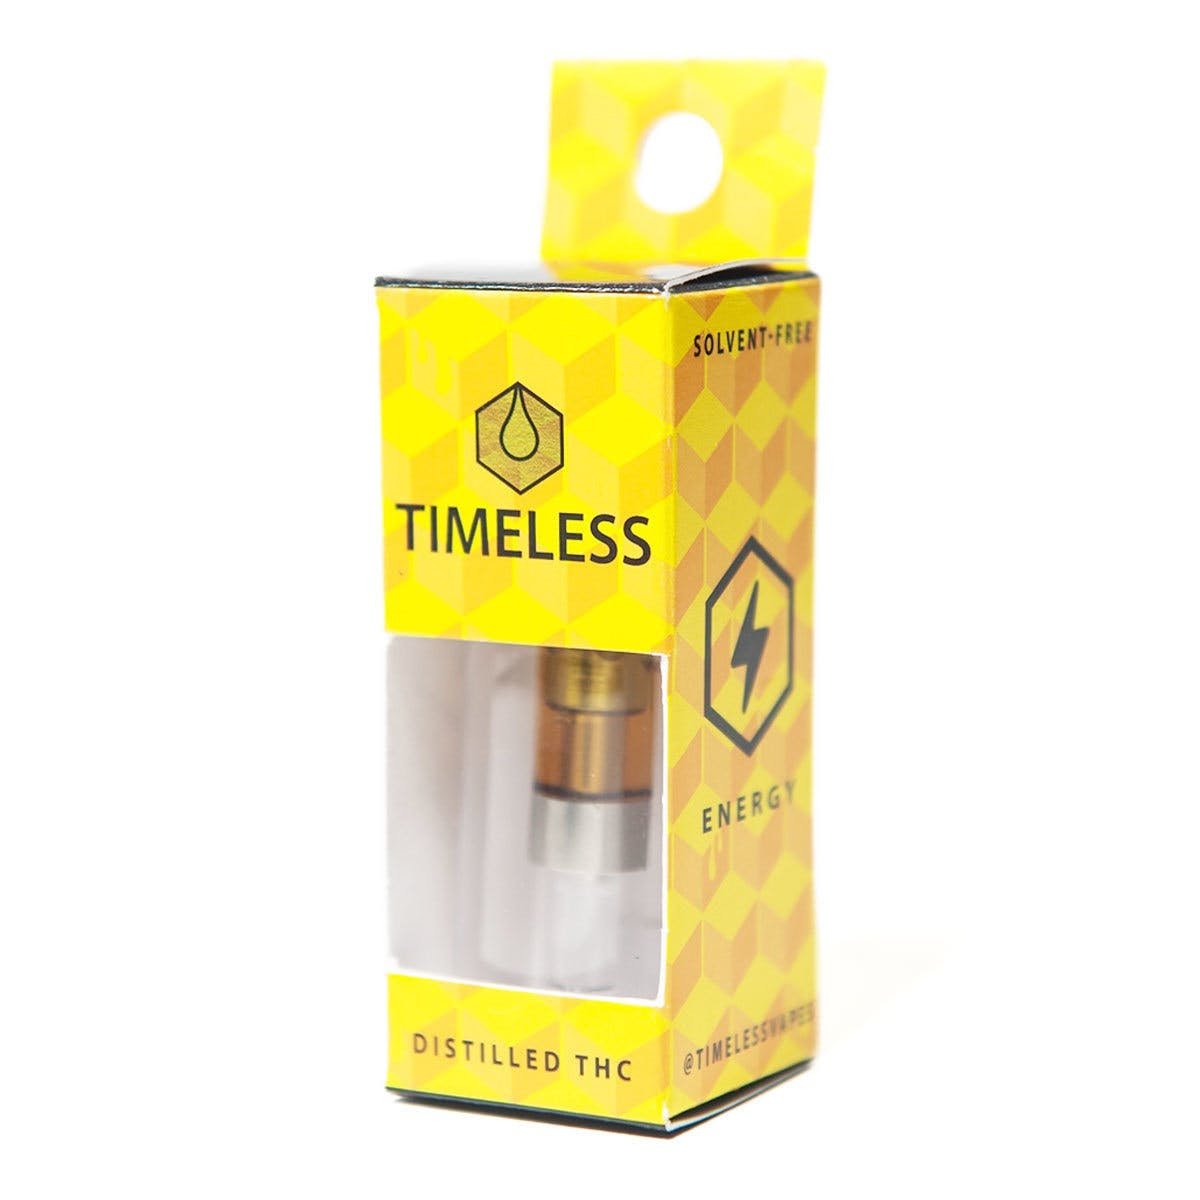 concentrate-timeless-vapes-500mg-durban-poison-vape-cartridge-energy